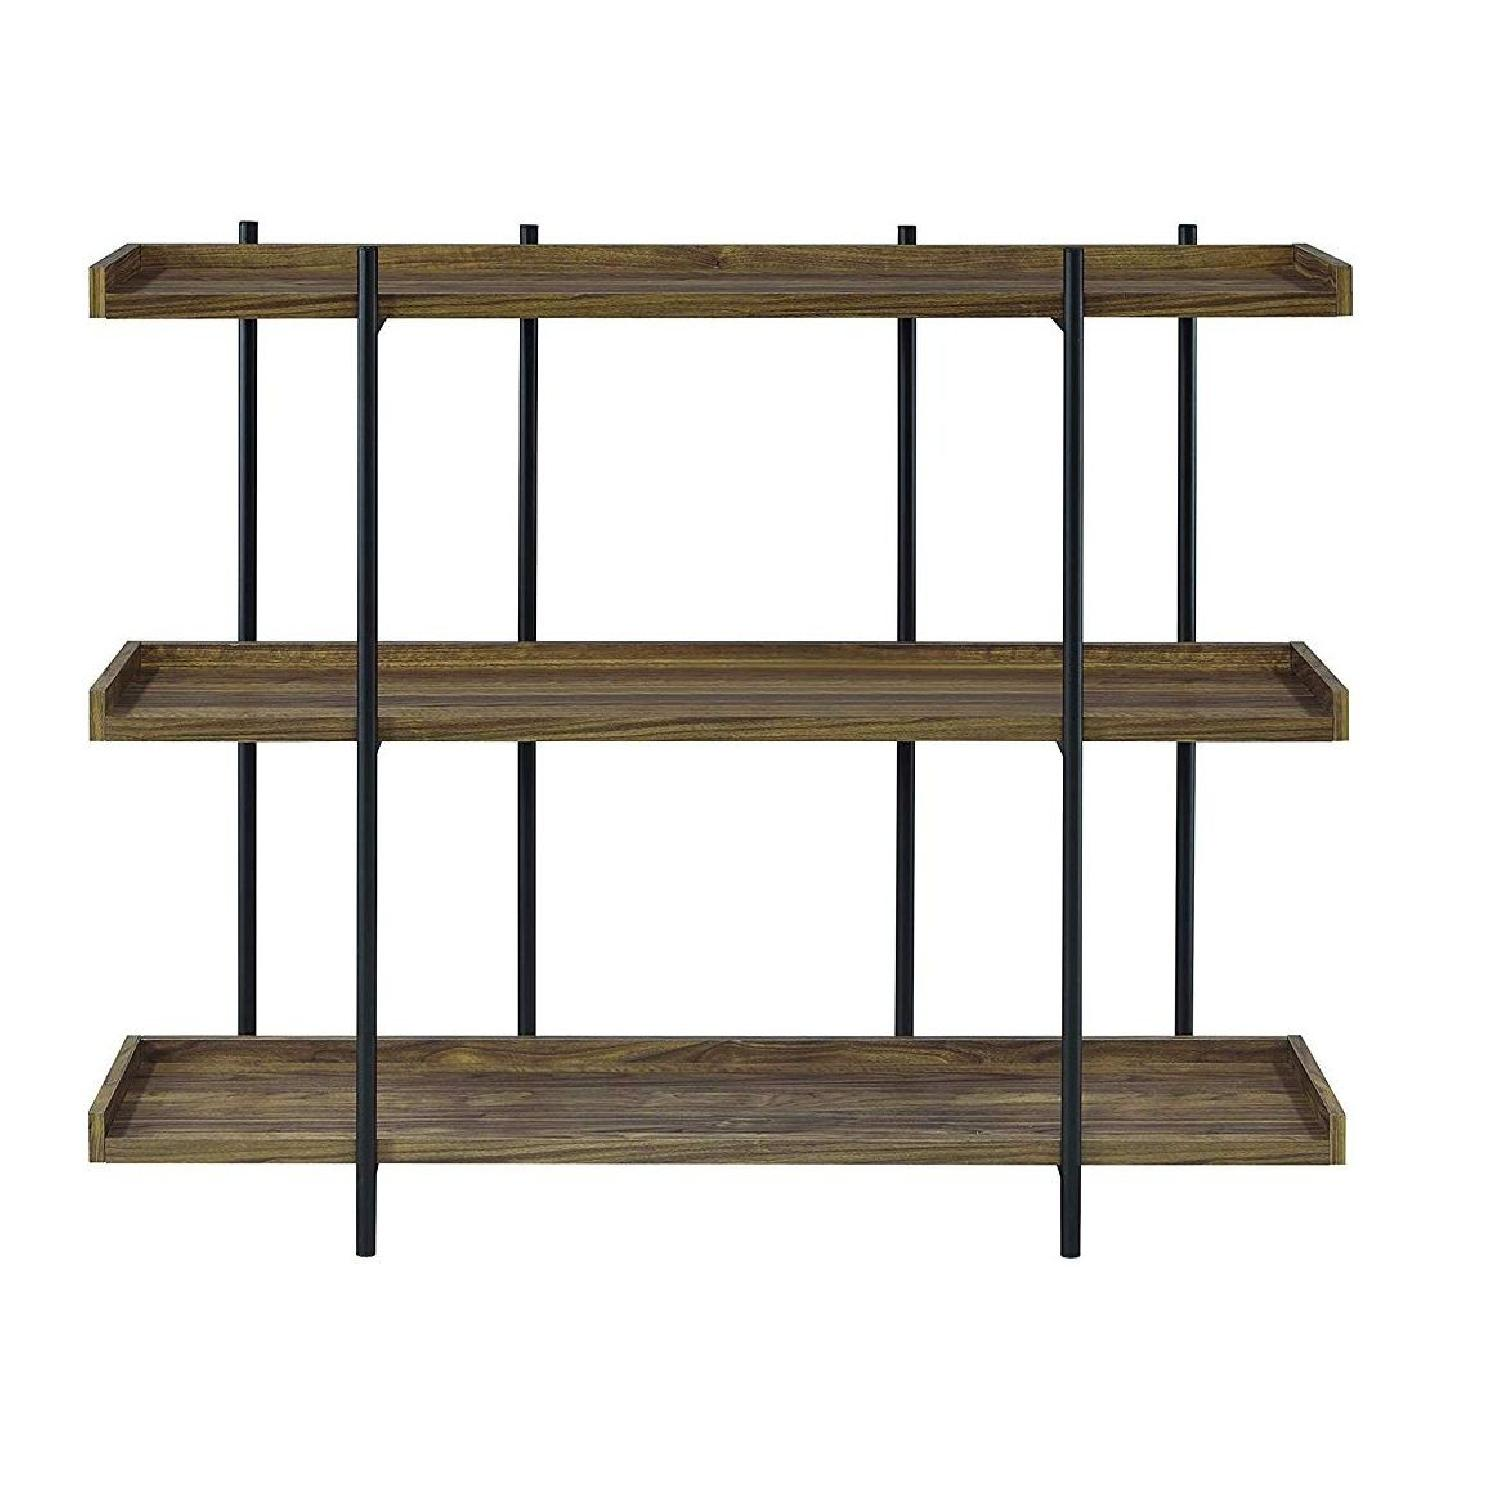 Industrial Style 3-Shelves Bookcase in Aged Walnut Finish - image-1